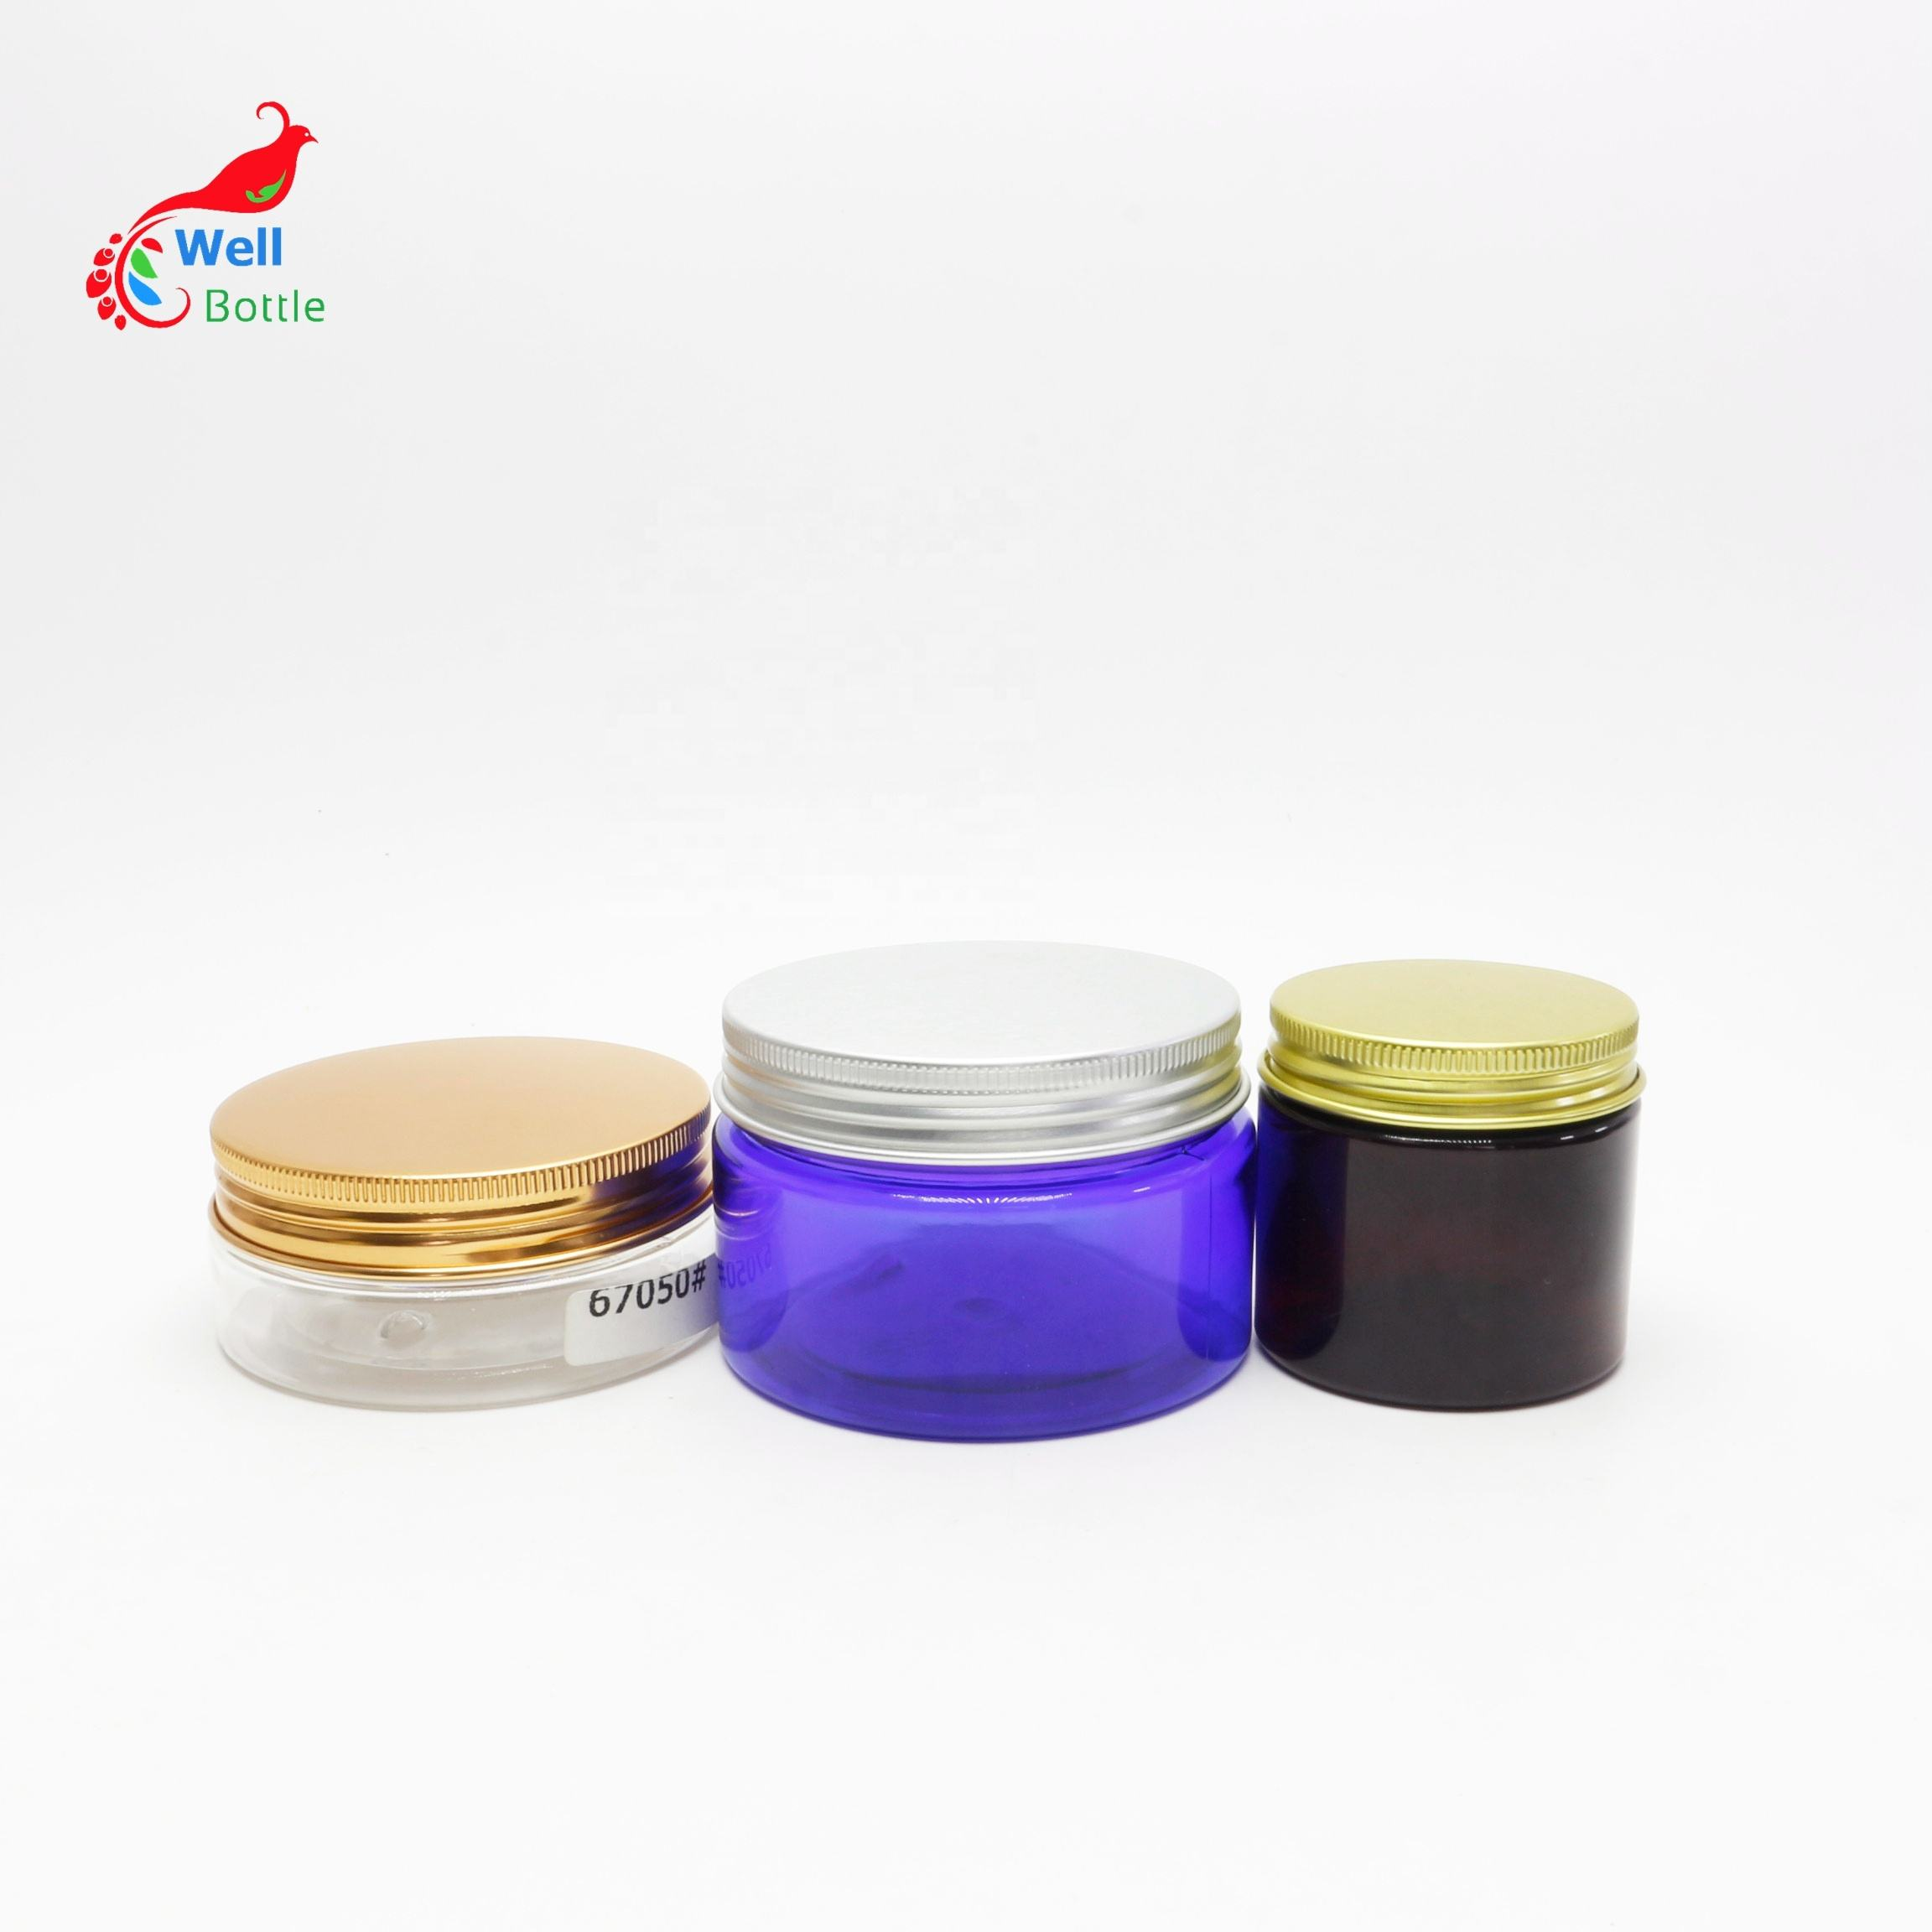 2oz 60ml 100ml 150ml 200ml 200g 8oz 250g 300ml 400g 400ml 500ml 1000ml 1g child resistant plastic jar 5ml plastic-71A